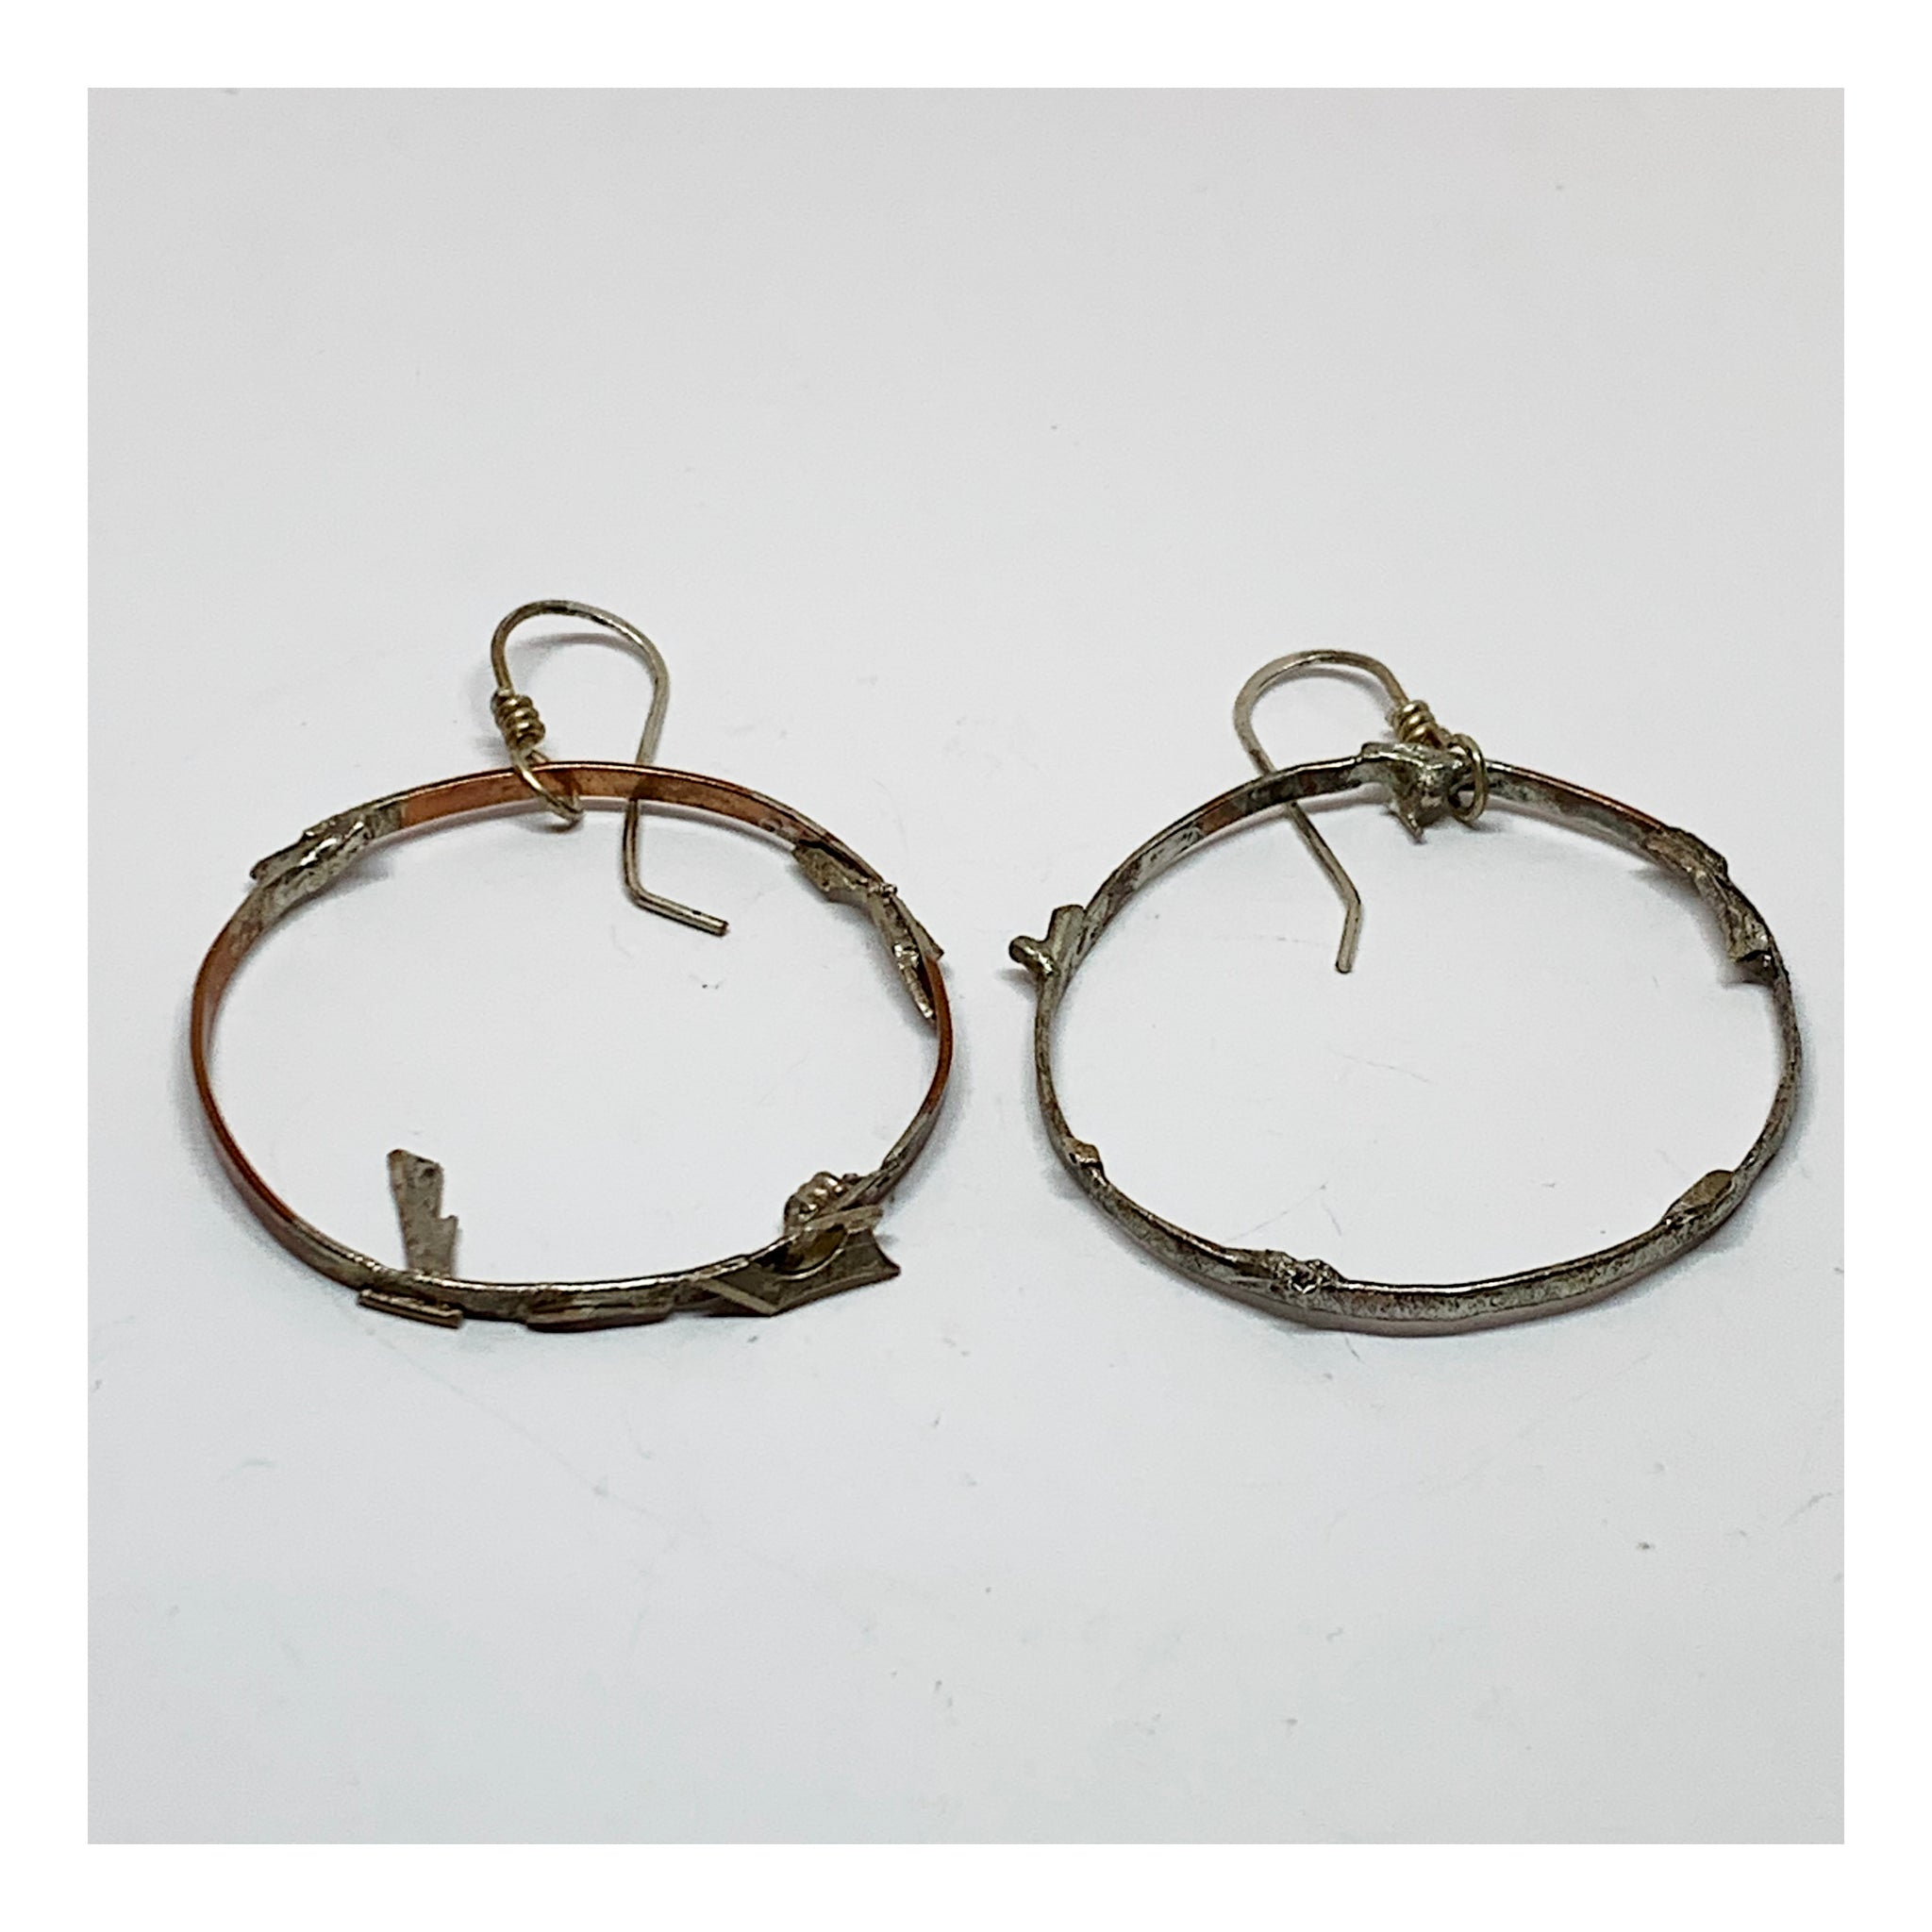 Hoop Earrings in Copper and Silver - Unique and Unusual Jewelry - Artisan Handmadw Jewelry